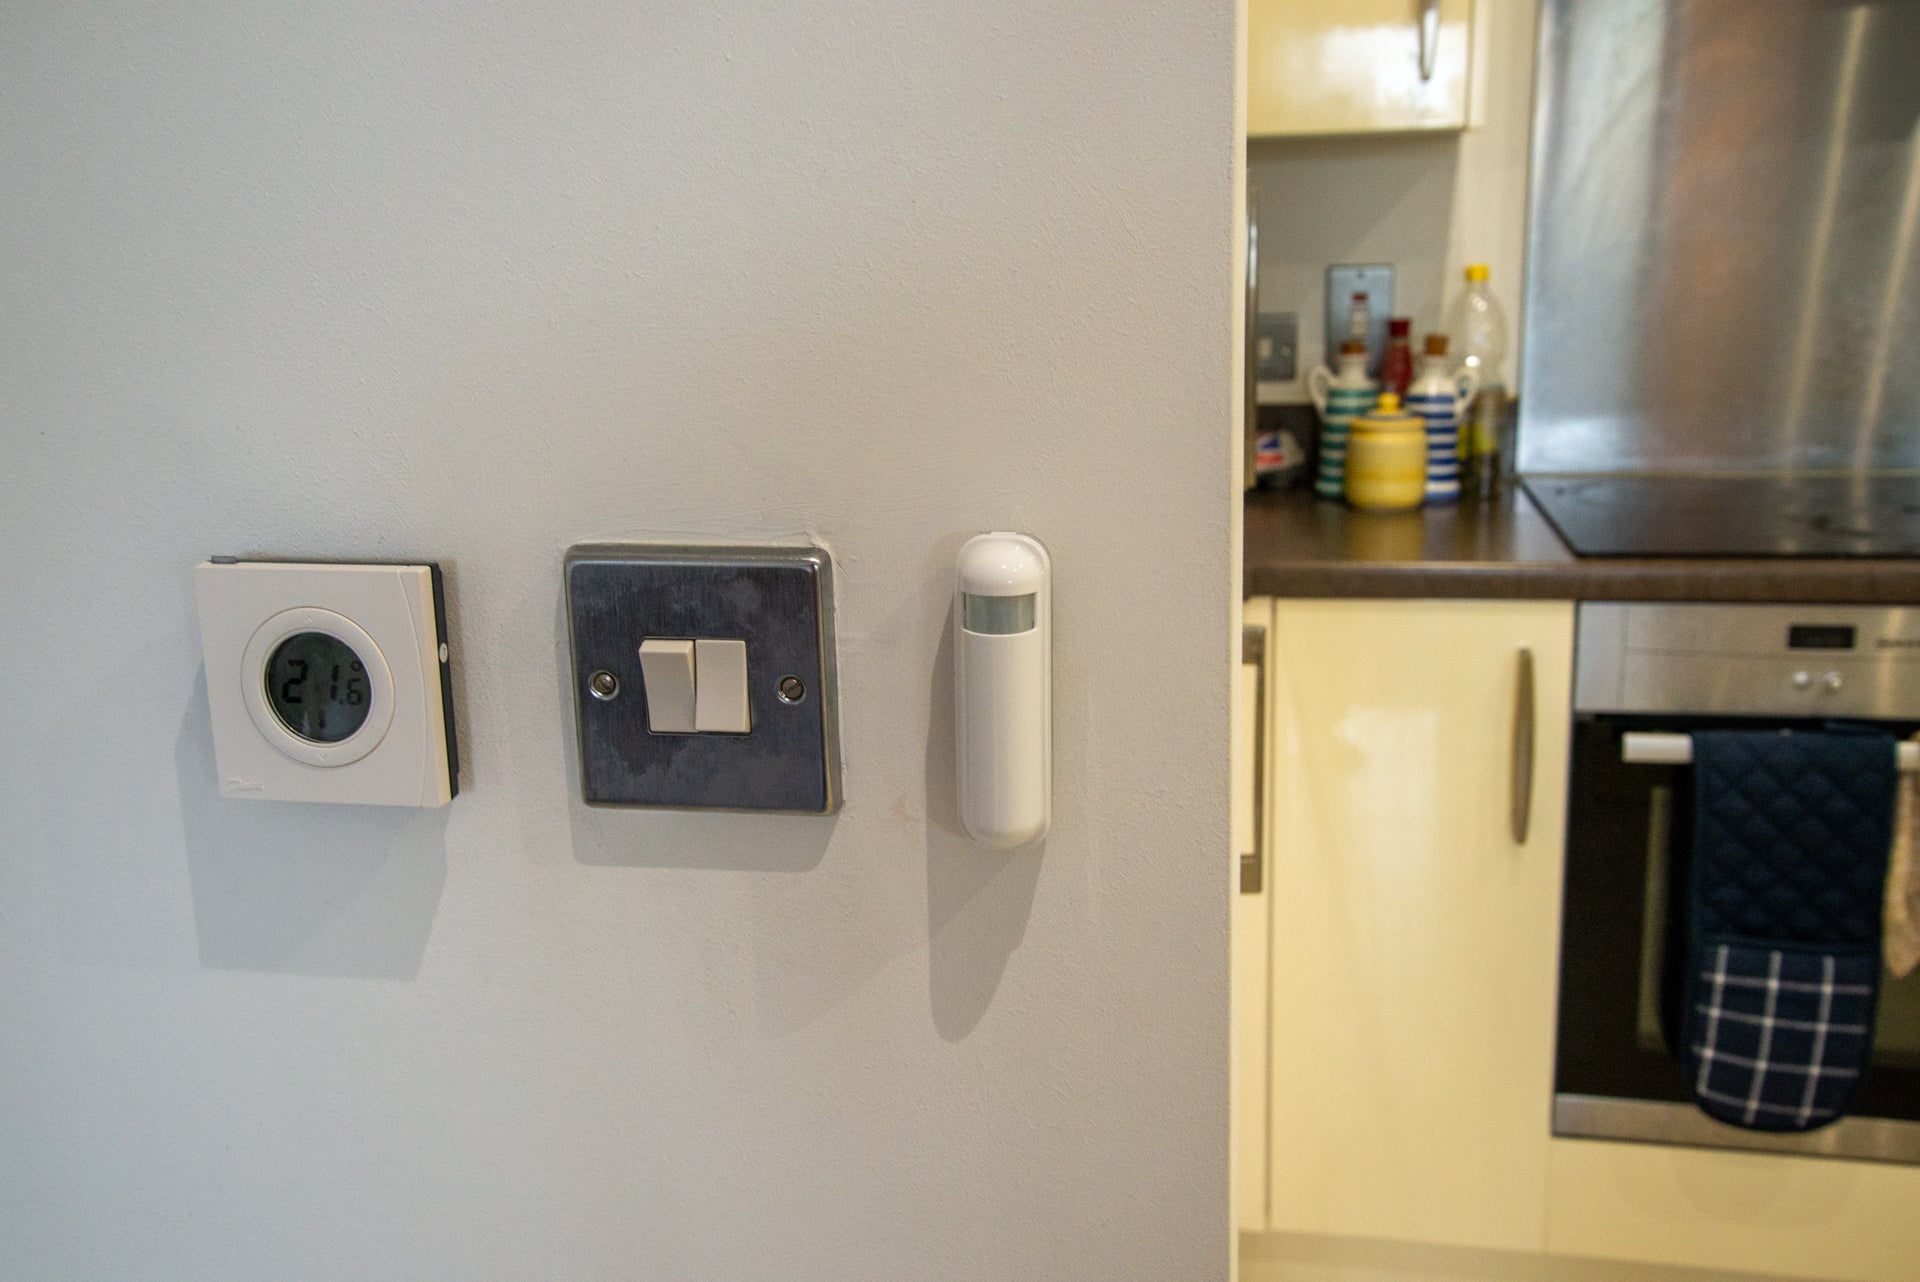 Danfoss thermostat Smart Valve Works With Samsung Smartthings Hub